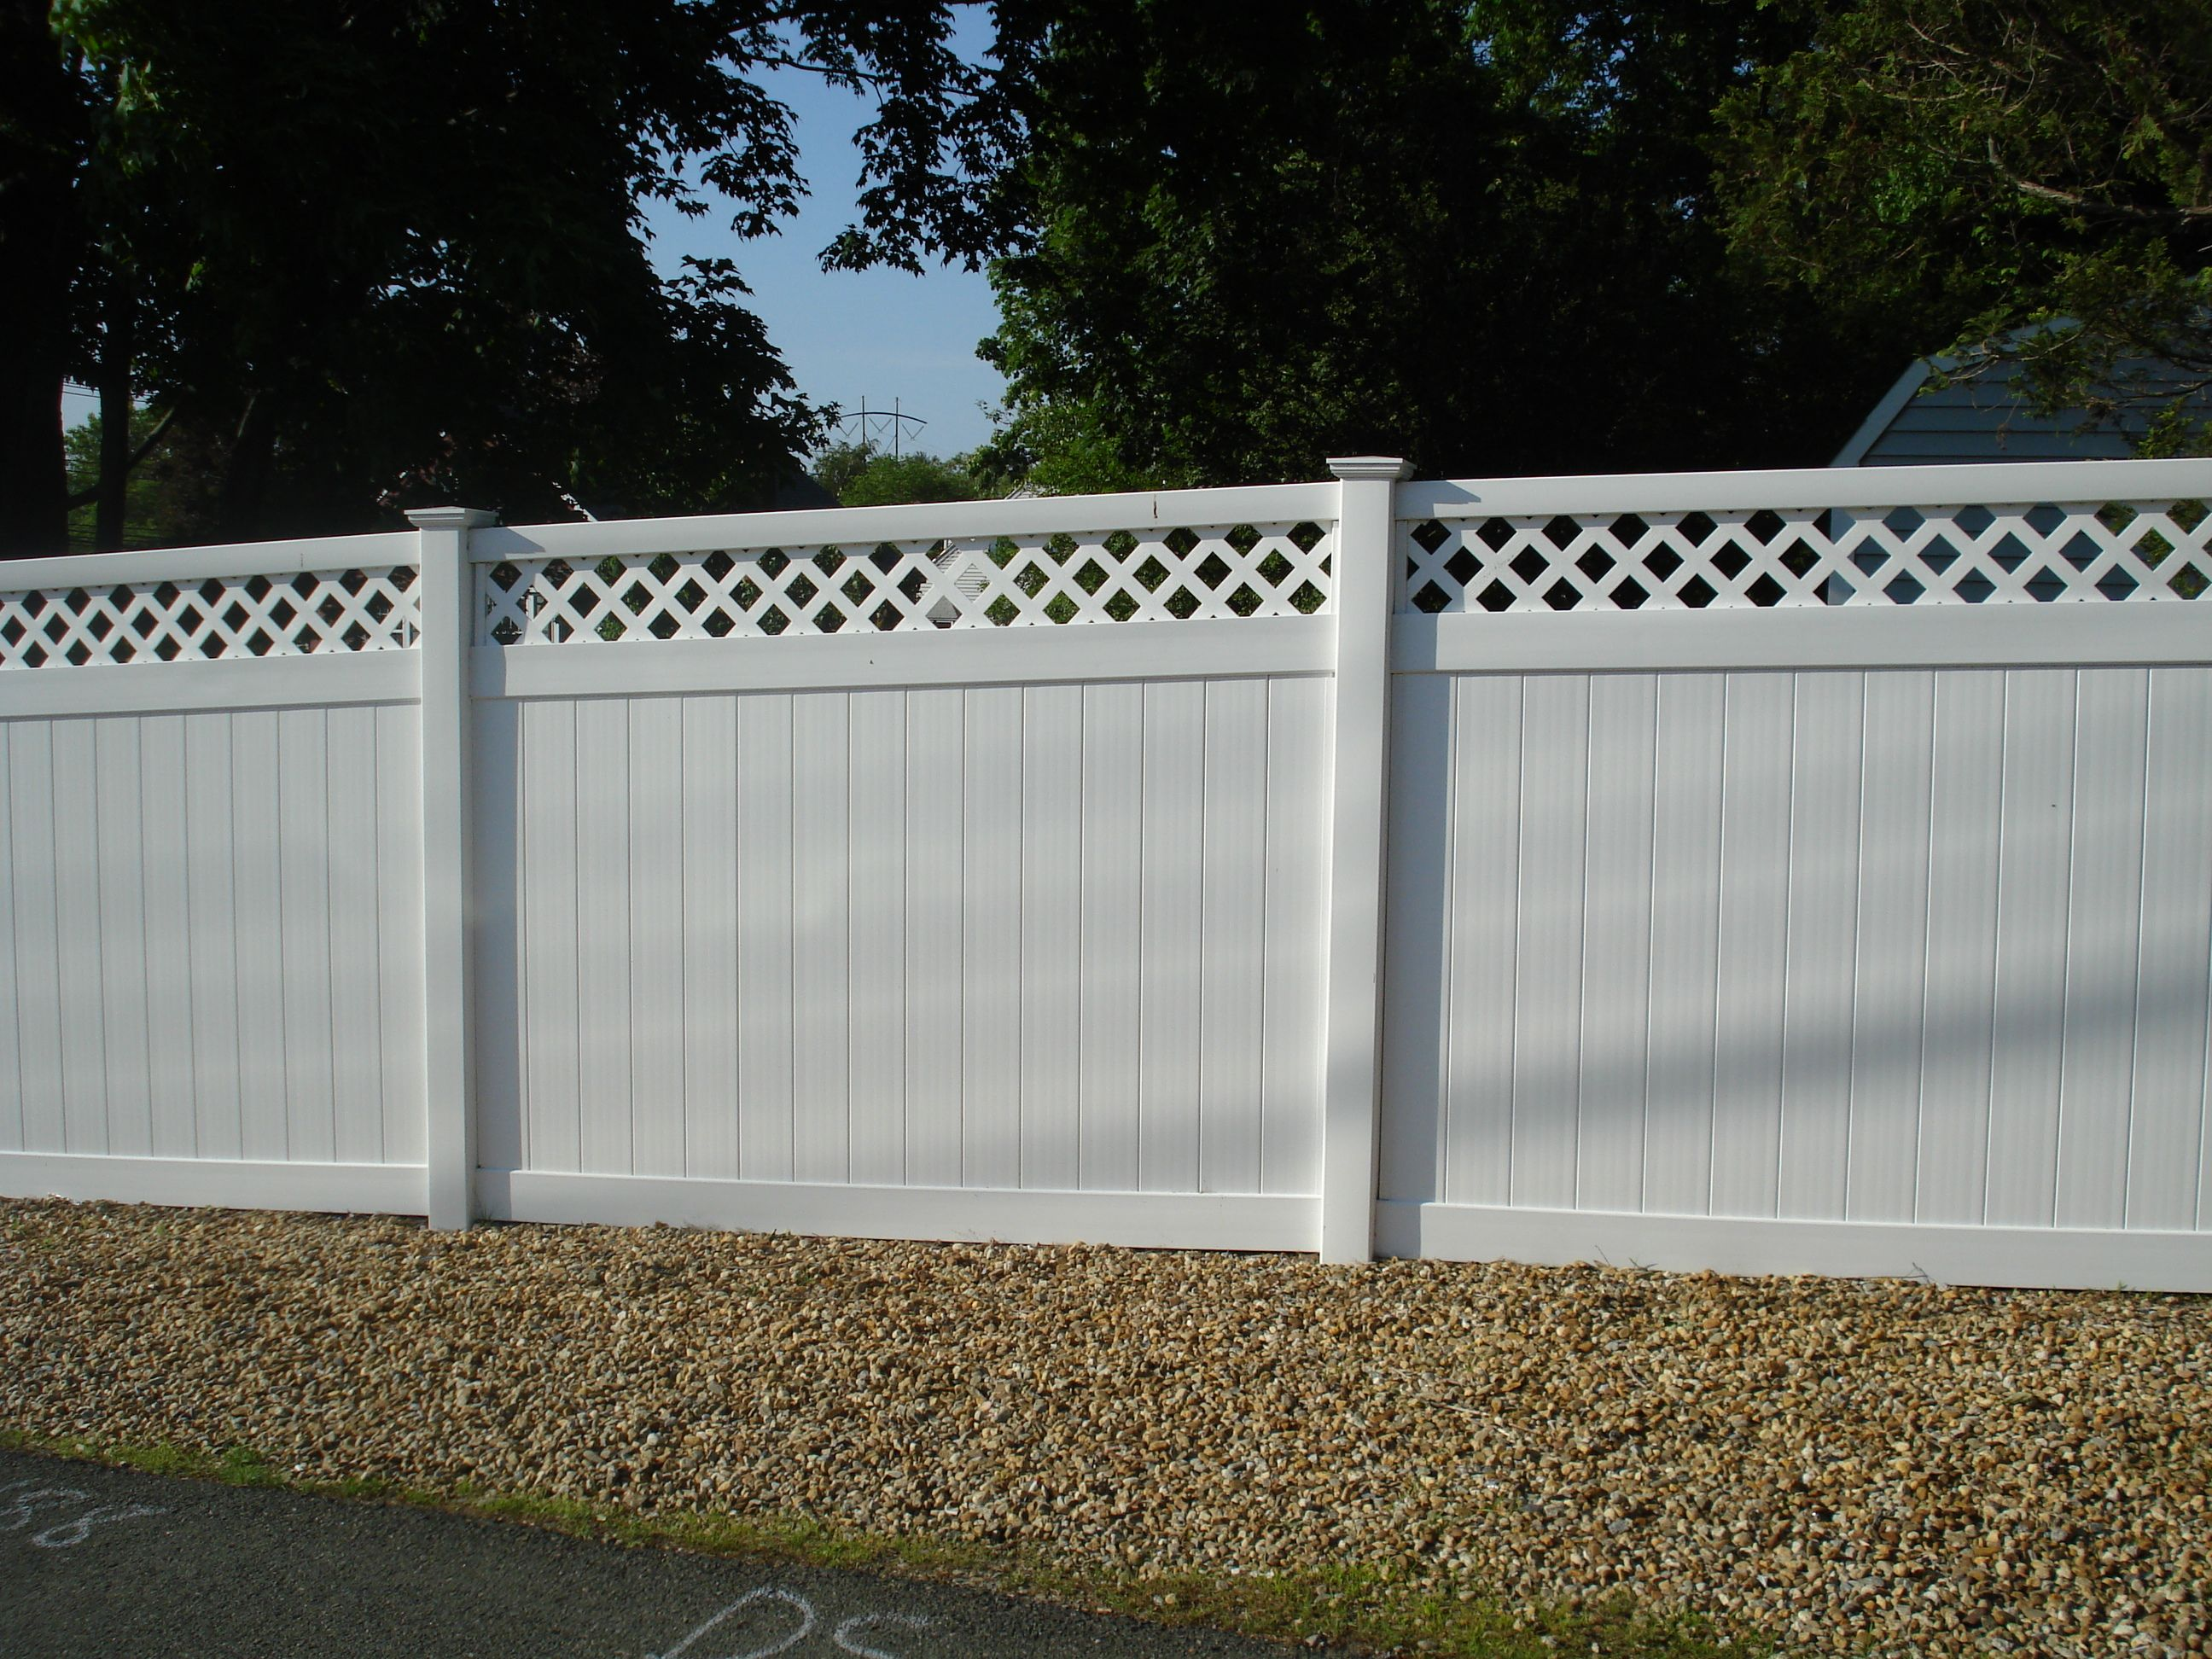 Non flammable vinyl fence stockist of fence boards in perth non flammable vinyl fence stockist of fence boards in perth baanklon Gallery